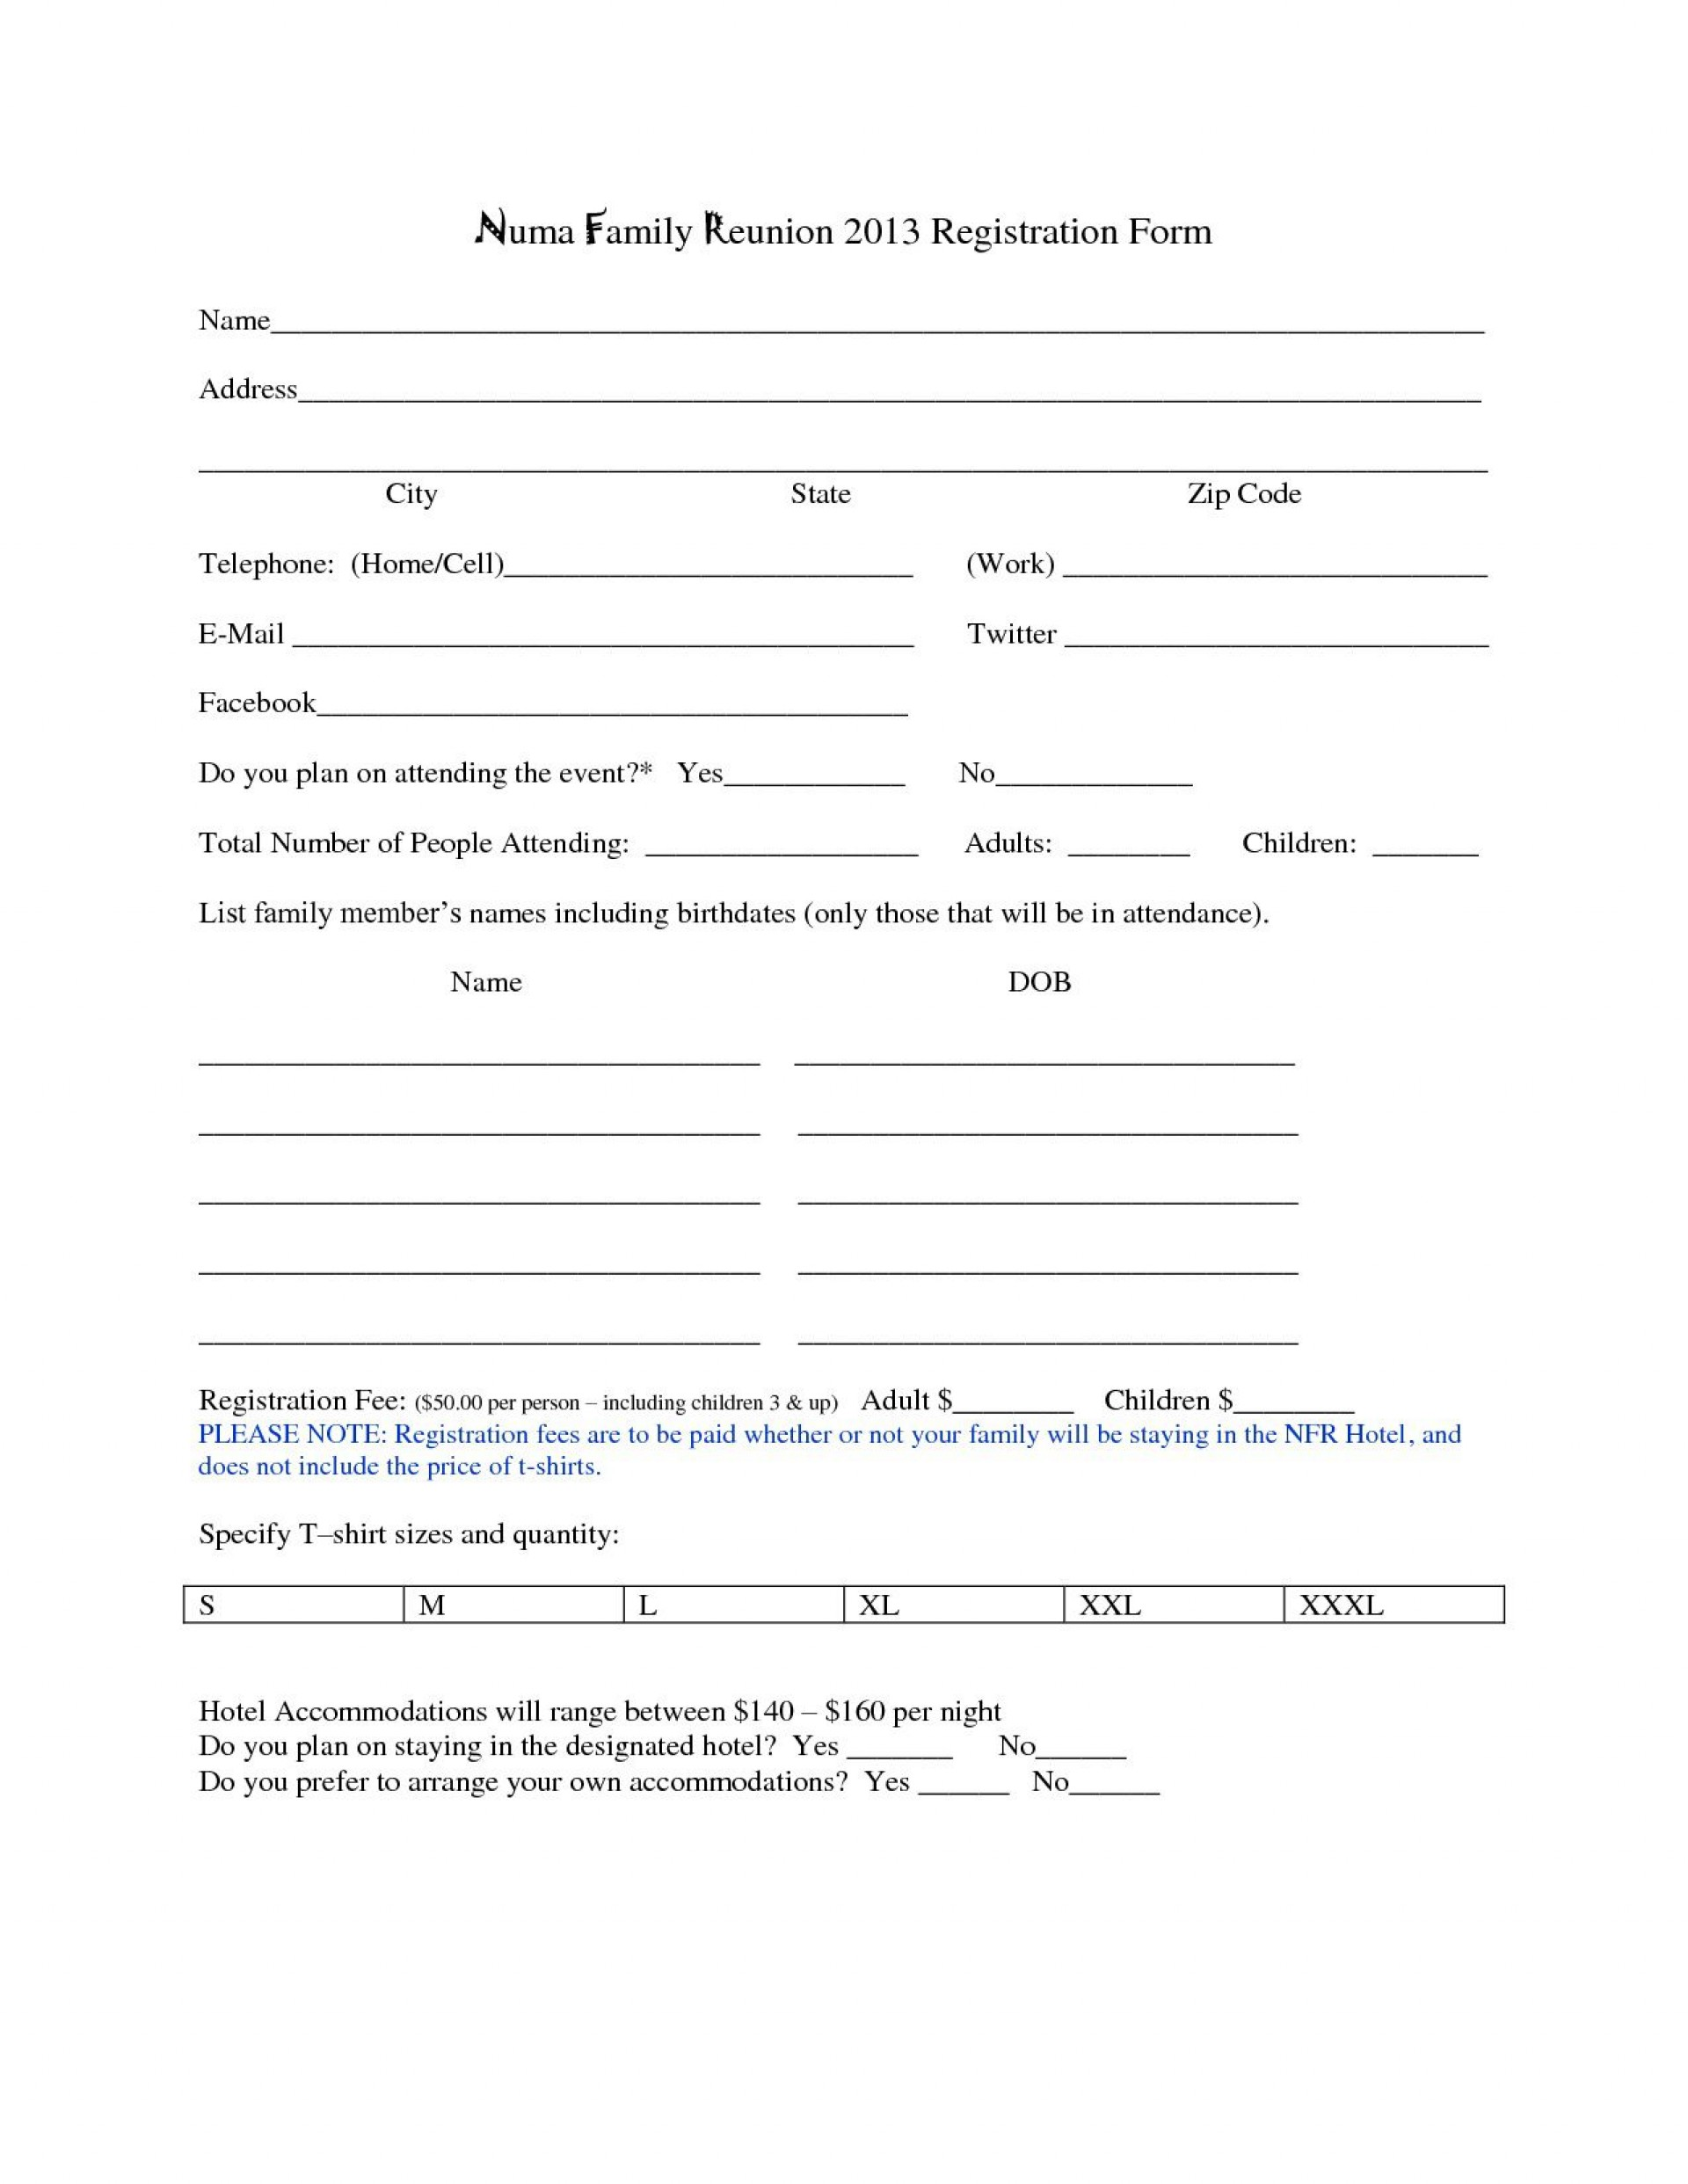 000 Wonderful Registration Form Template Word High Def  Conference Free1920